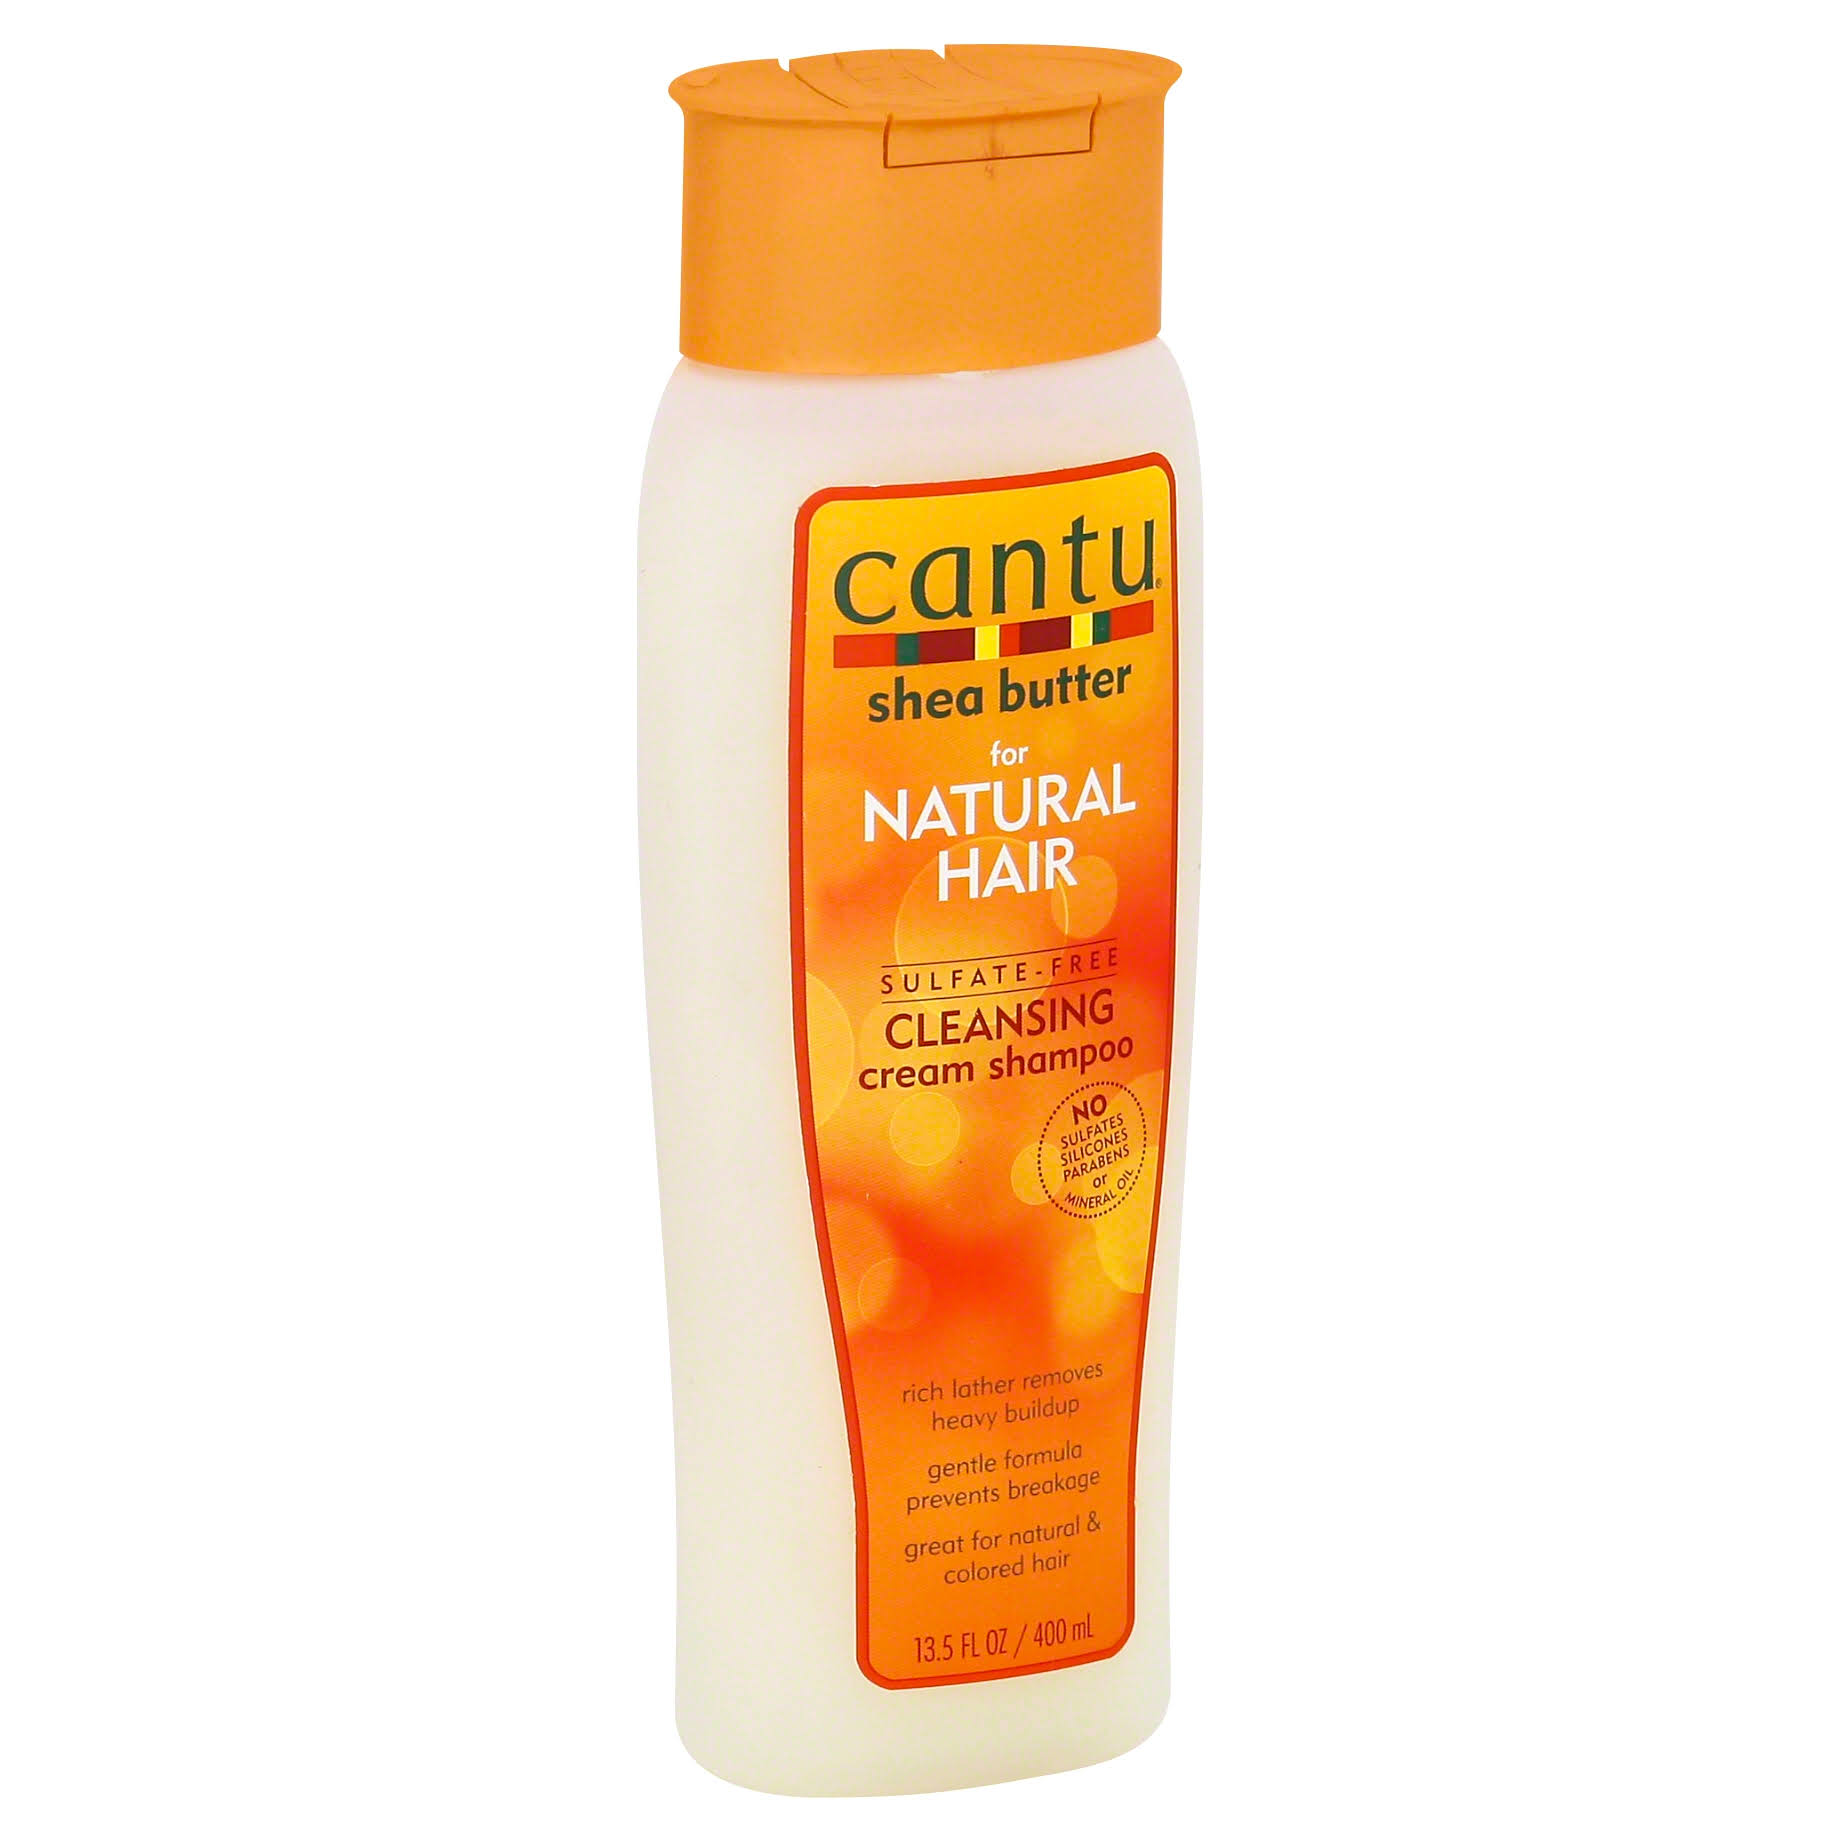 Cantu Shea Butter Sulfate-Free Cleansing Cream Shampoo - 400ml